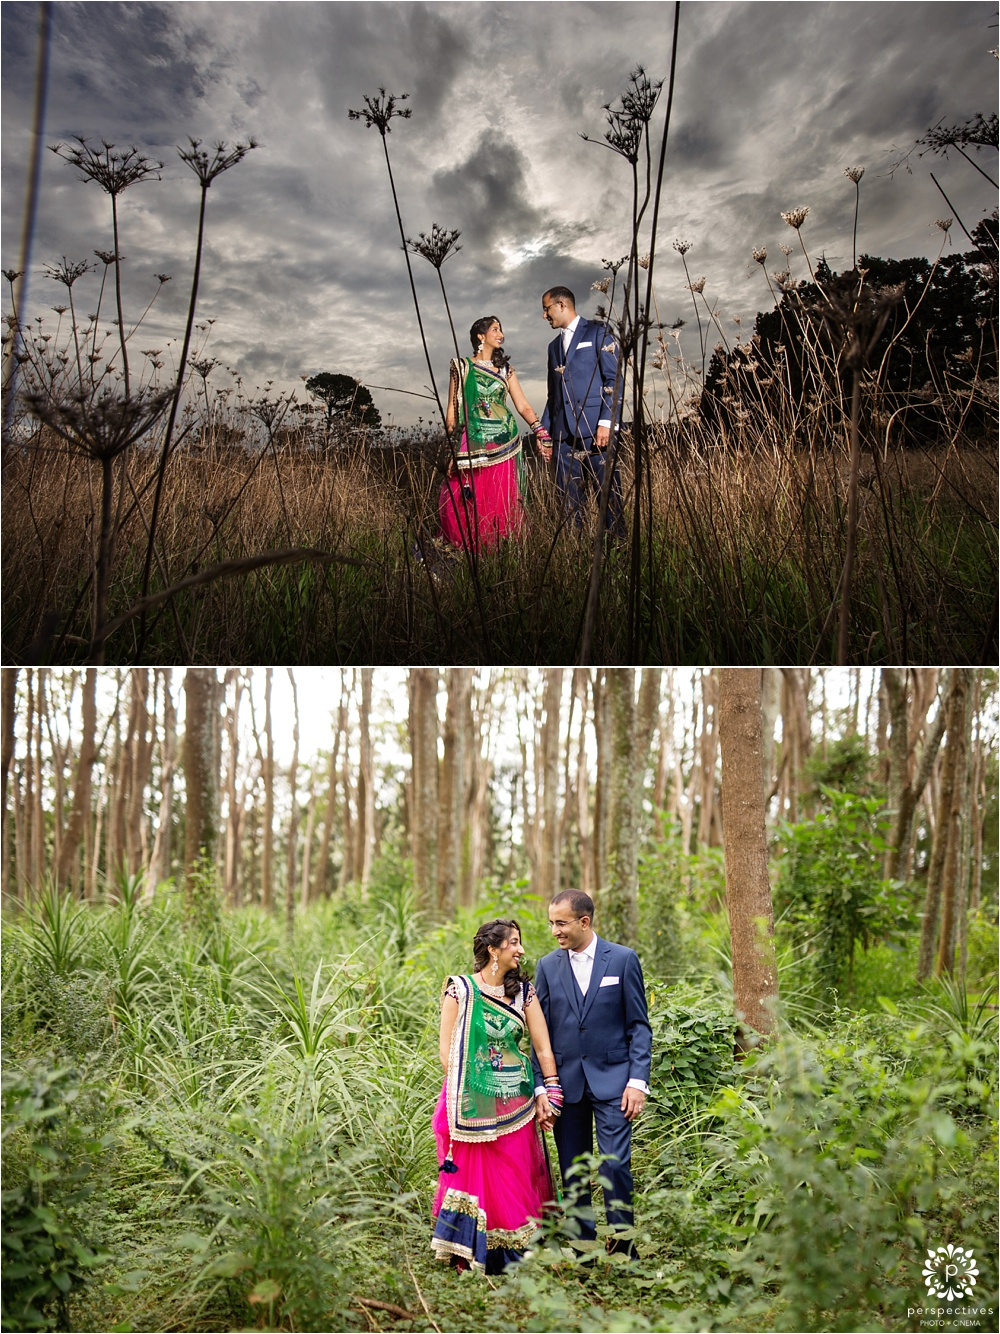 Hindu wedding photography Auckland